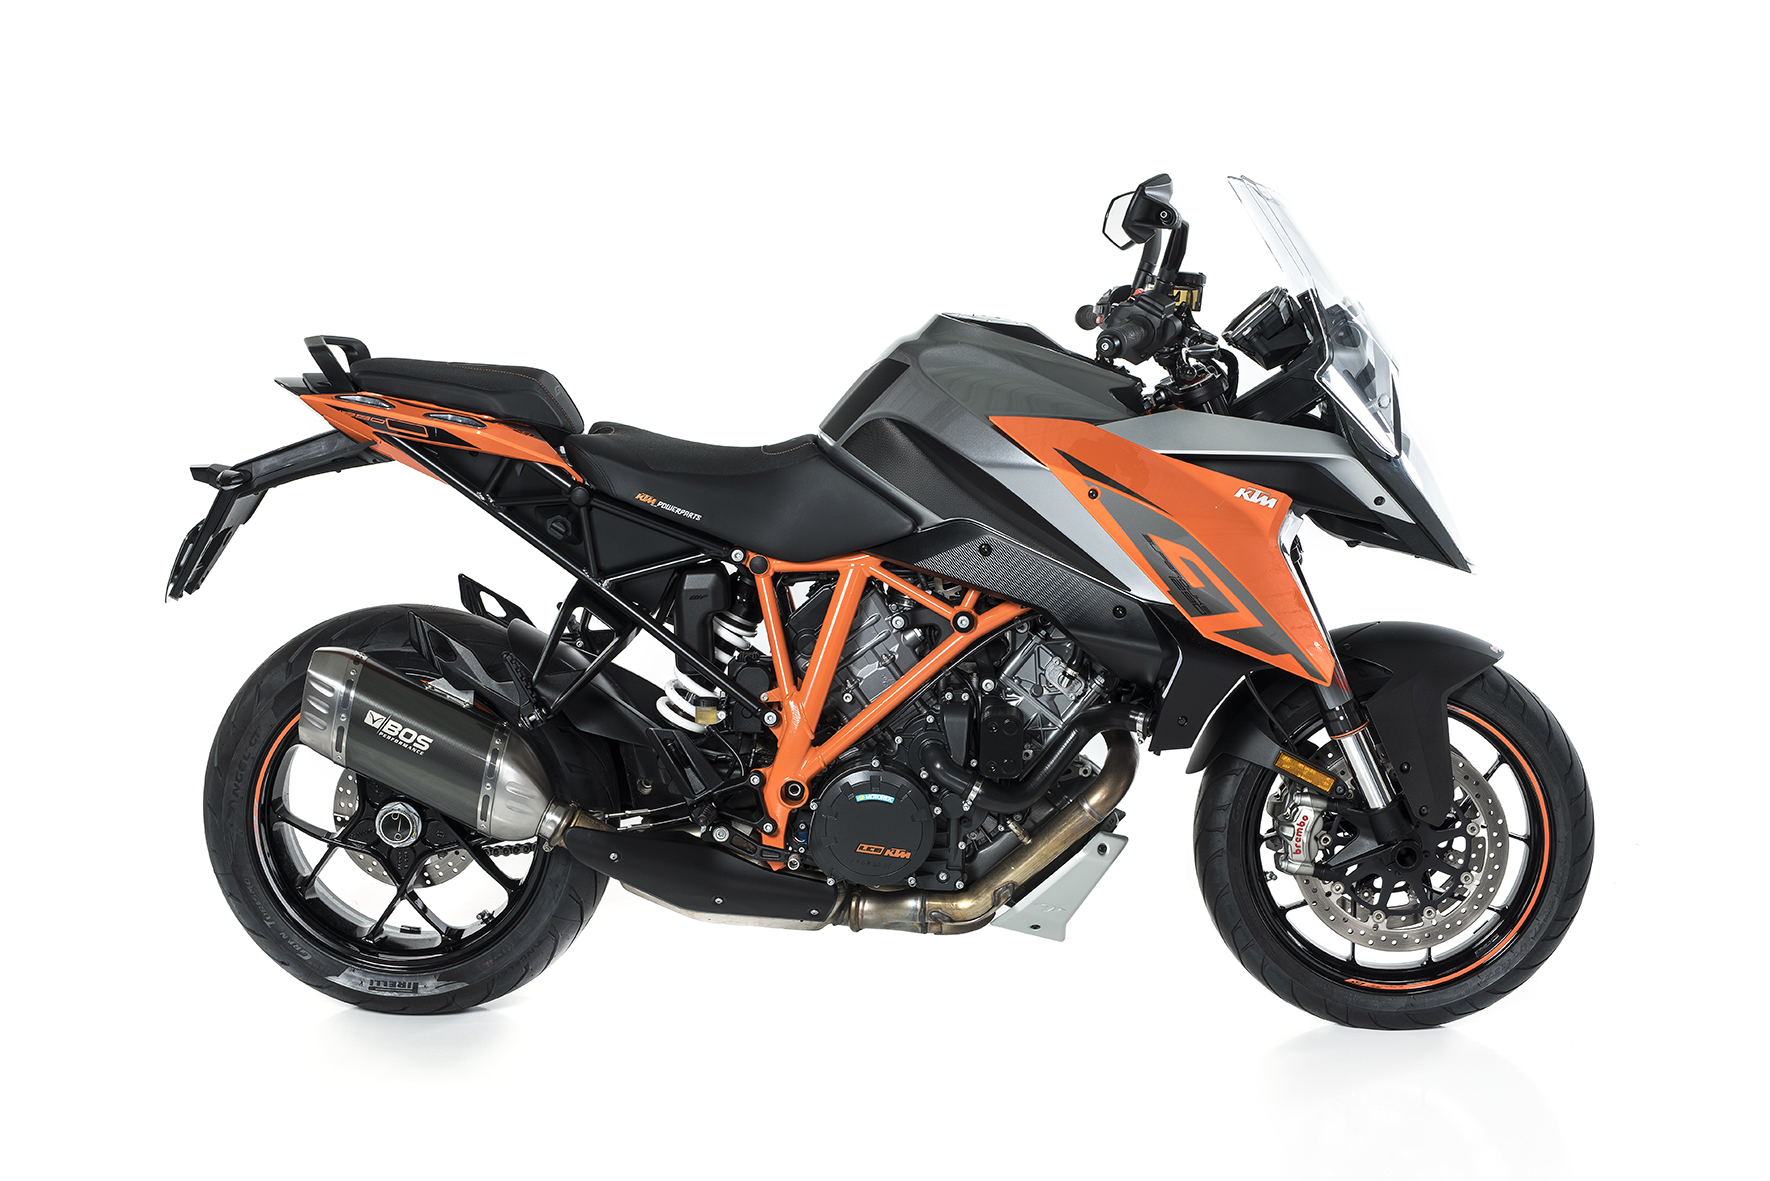 KTM 1290 Superduke R ab 2017 Euro 4 Desert Fox Slip-on